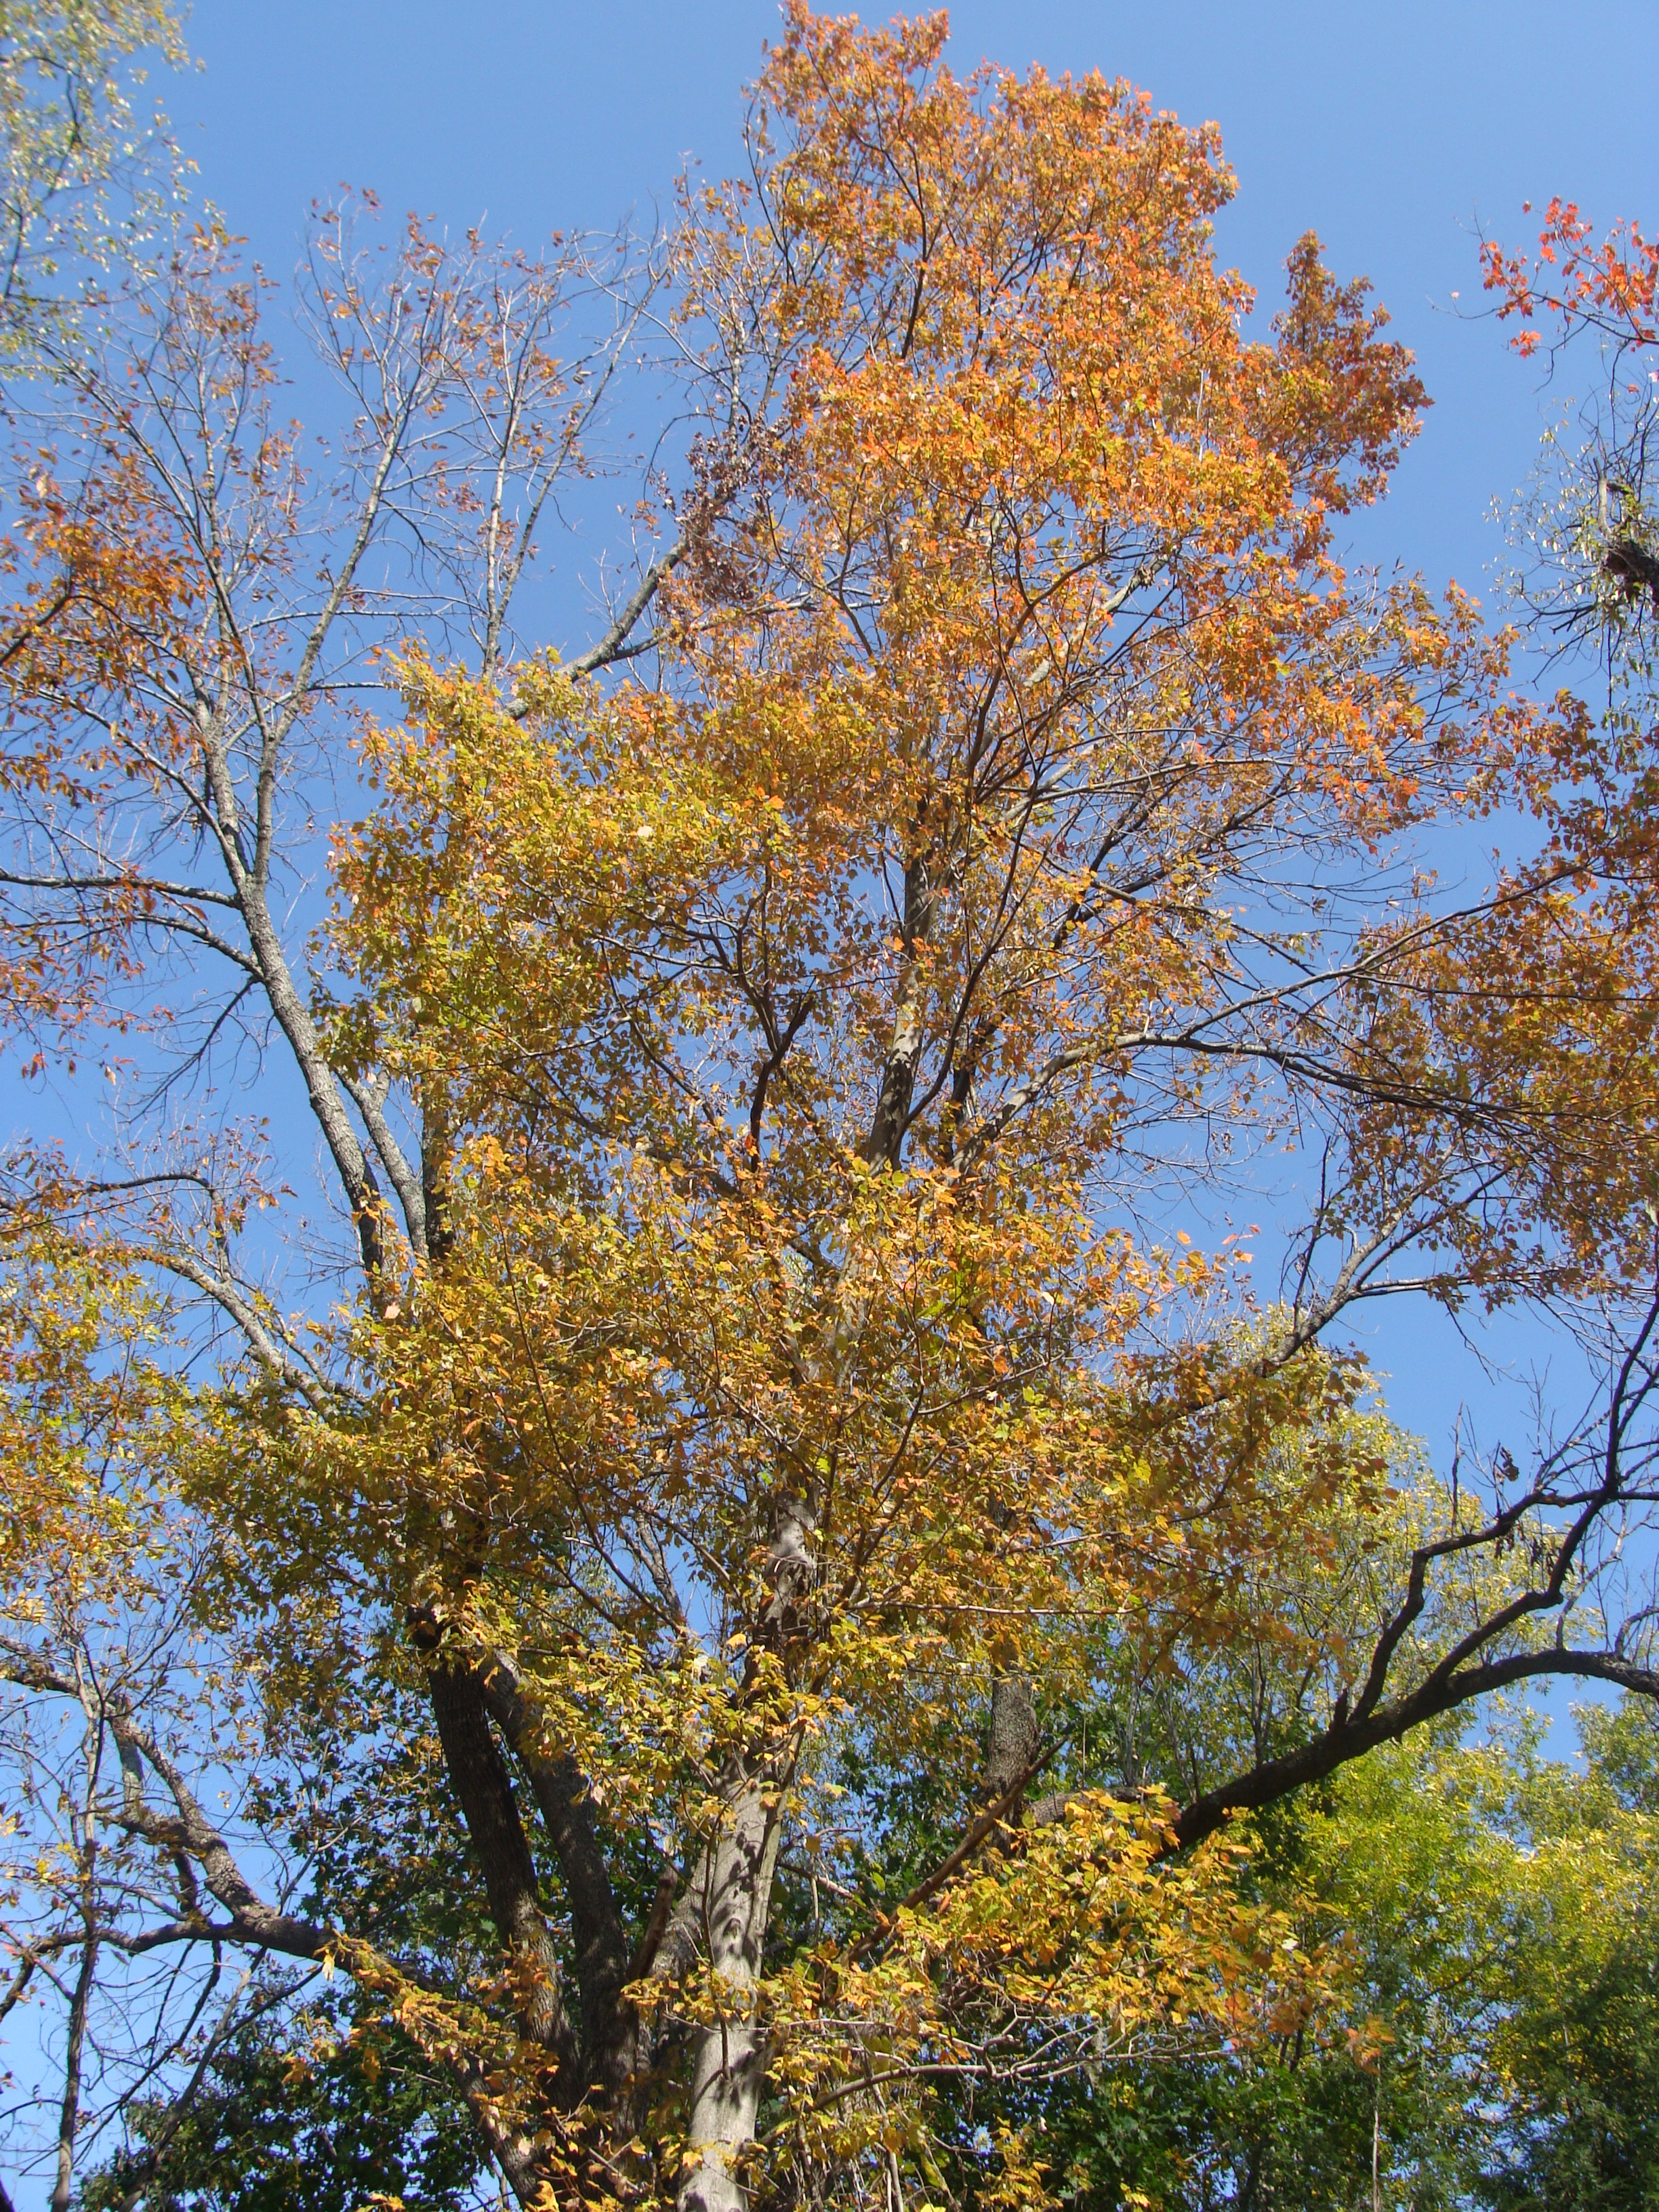 Ash Tree Leaves Autumn Leaves, is our ash tree at